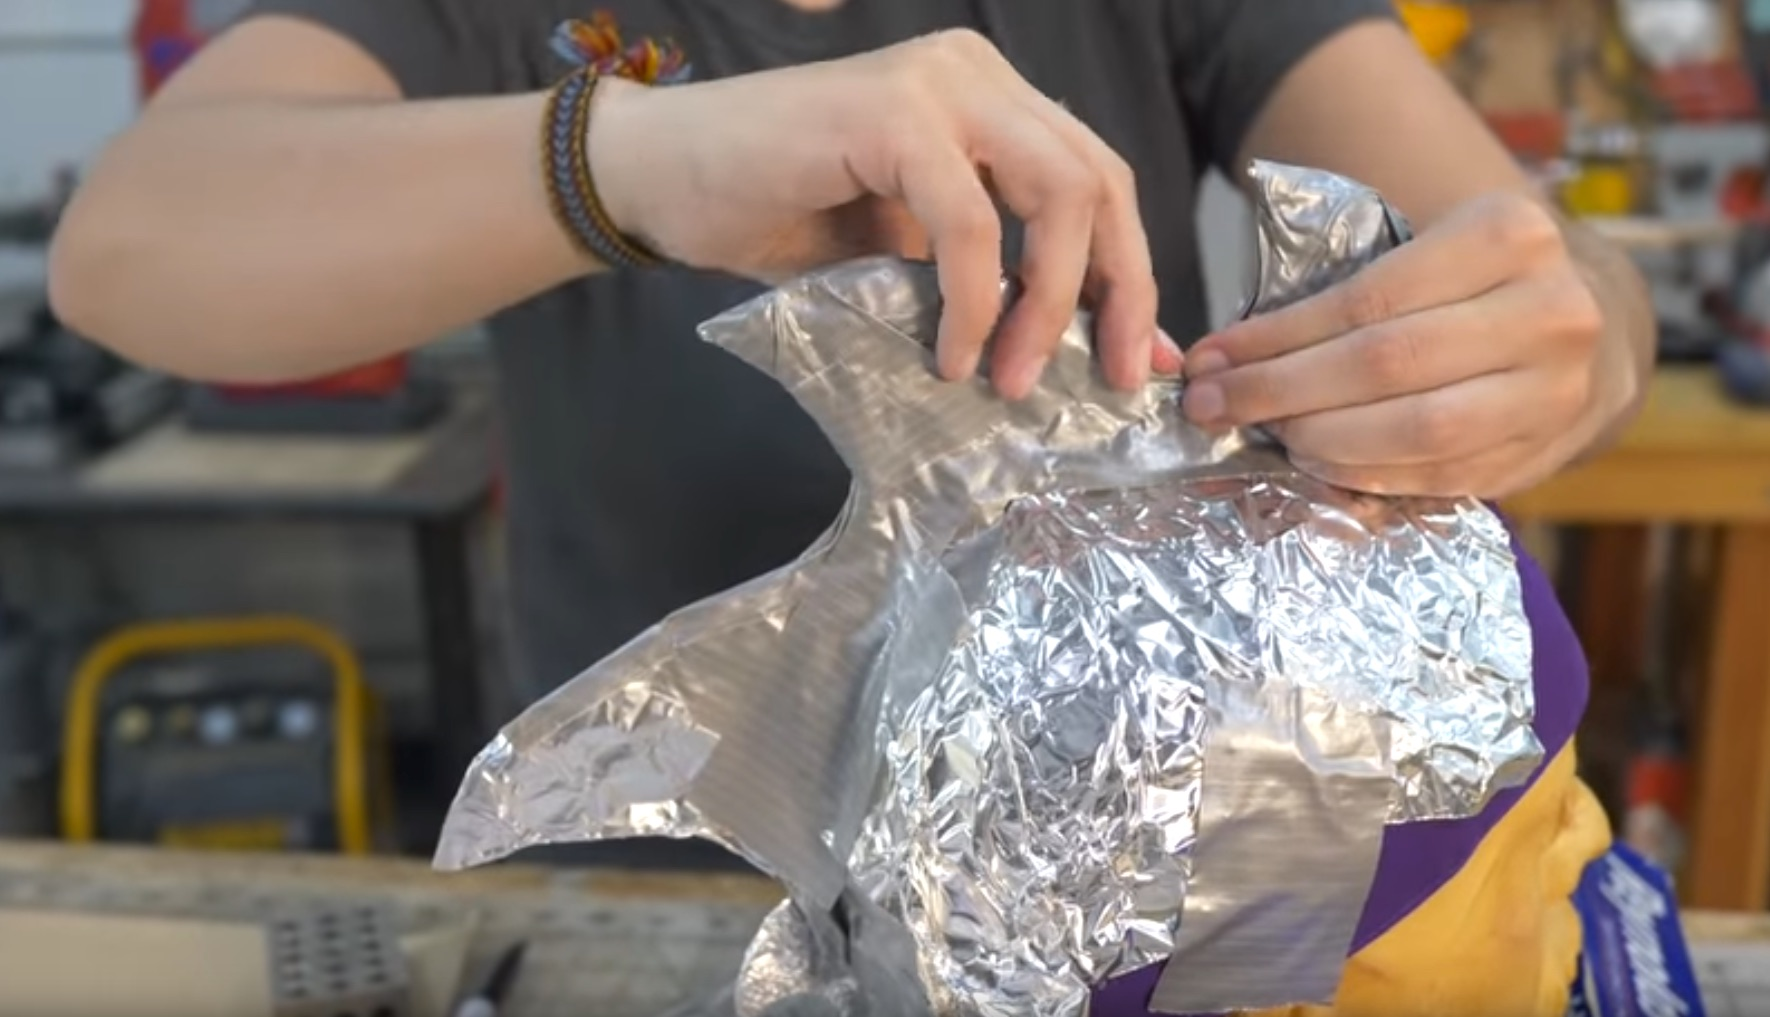 Tips of the Week: Chop Saw Tips, Improving a Cheap Airbrush